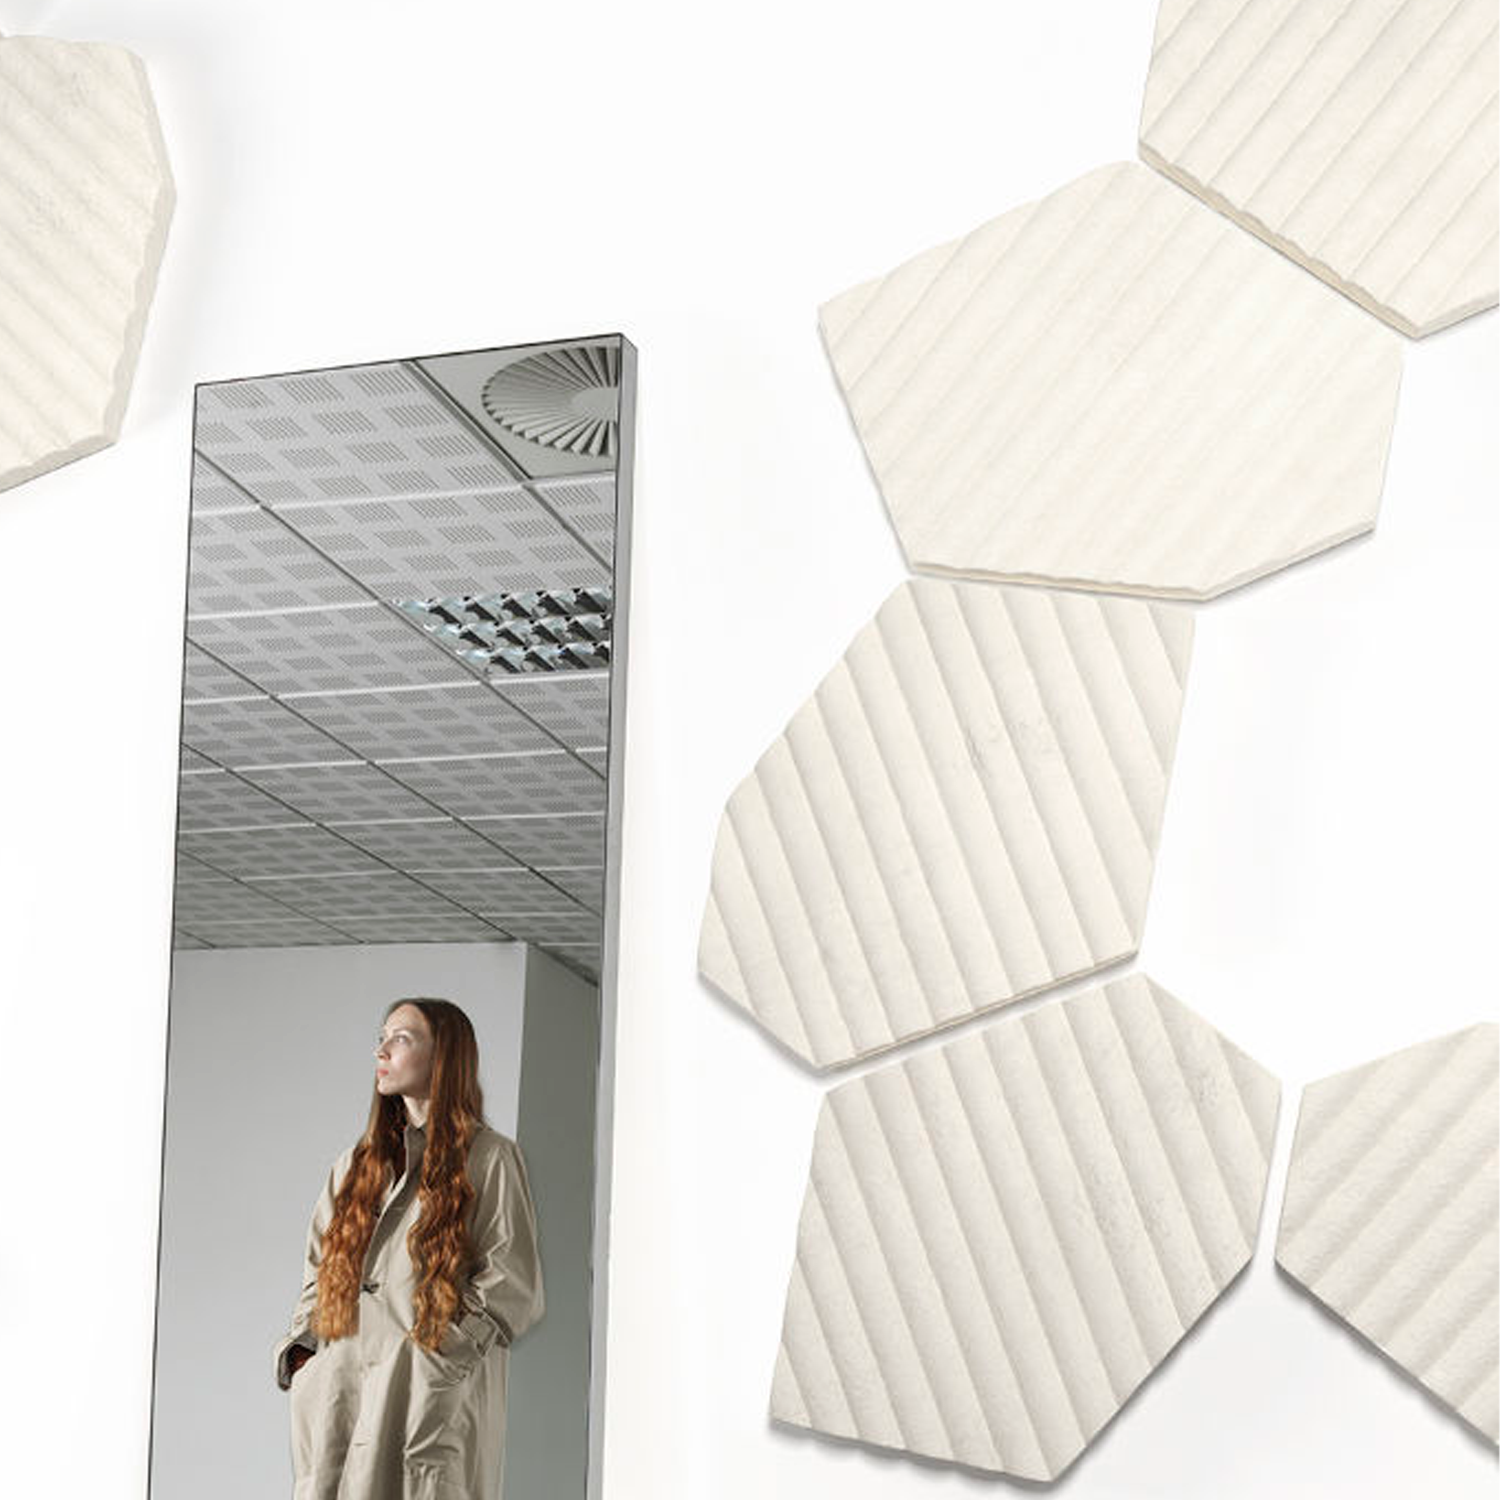 Fields Acoustic Panels - Acoustic collection marks an unprecedented revolution for interior design comfort.  Acoustic modules are made from soft, foam like mycelium materials grown on upcycled textile residues. Thanks to the unique technology, Acoustic panels represent today the most sustainable solution dedicated to acoustic comfort. They are characterised by a unique velvety finishing and different 3D shape, to maximise sound absorption as well as aesthetic comfort.   FIELDS: Inspired by patches of cultivated land as seen from above, Fields features an irregular hexagon shape. Its soft, velvety surface is marked by delicate stripes, recalling the pattern of the seeding tracks. A calm texture, evoking a long-lasting collaboration between Humans and Nature. Despite their irregular shape, Fields modules allow for perfect tiling compositions, by means of a simple rotation of its geometry on one side. When adjacent, as in their standard configuration, the lines always meet each other, creating a visually ordered and elegant pattern  Non-GMO, non-allergenic fungal strains, which do not release any spores throughout the whole production process. The materials have been tested for allergenic and VOC Emissions.  Available in the natural white version as well as in a range of colours, please refer to colour sheet attached below. | Matter of Stuff